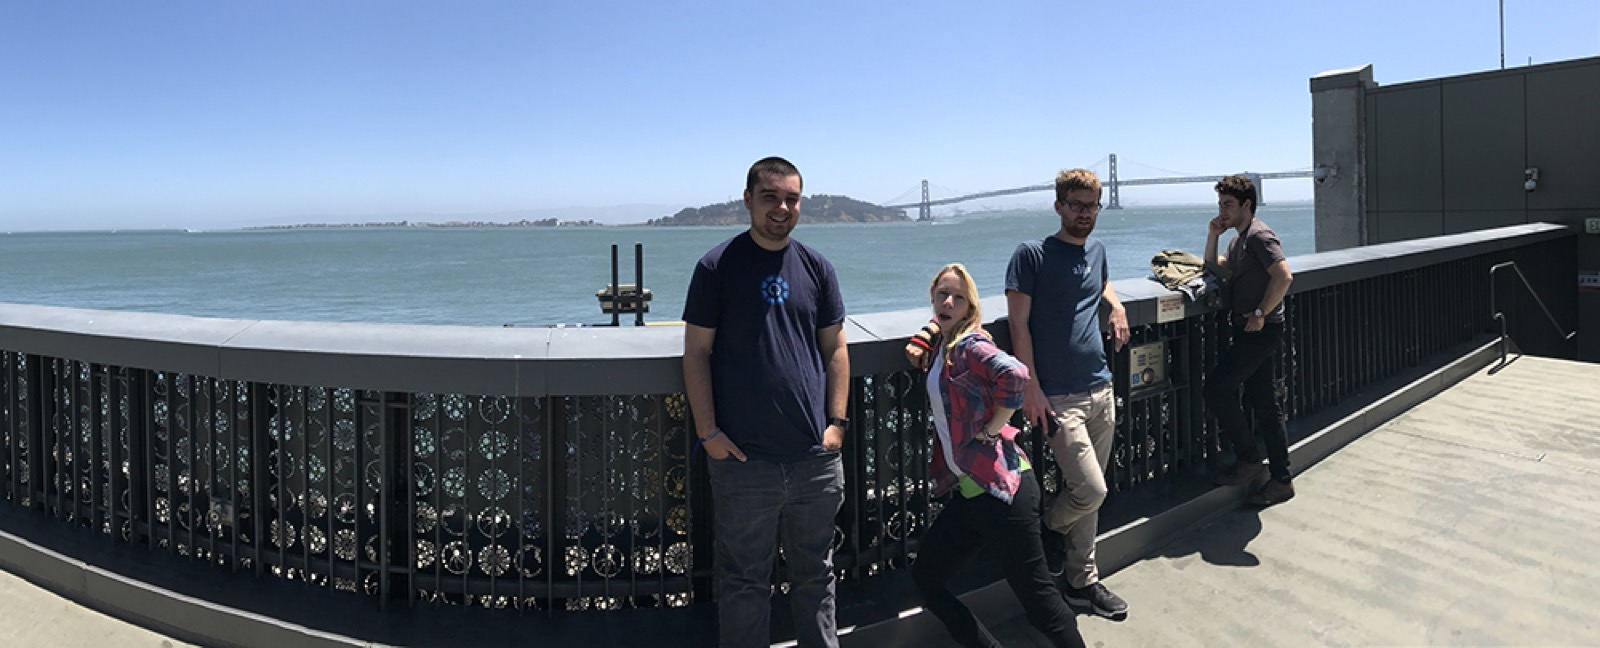 A Little Over A Month Ago I Landed In Sunny San Francisco For A Summer Of